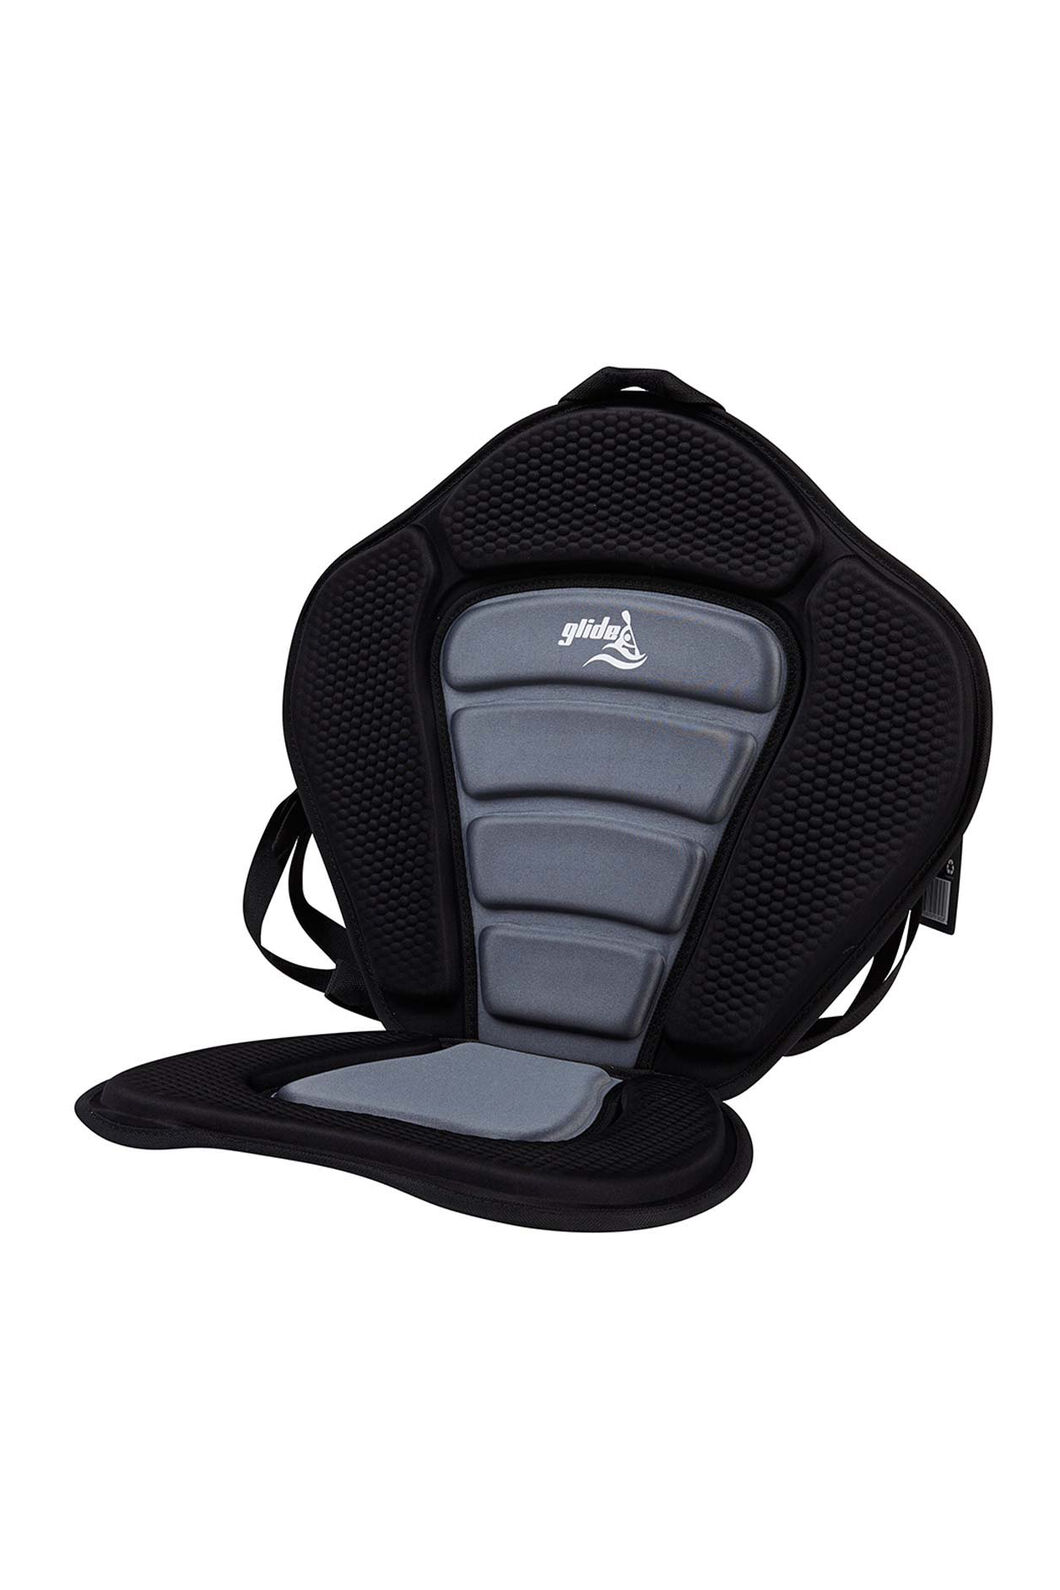 Glide Deluxe Kayak Seat, None, hi-res